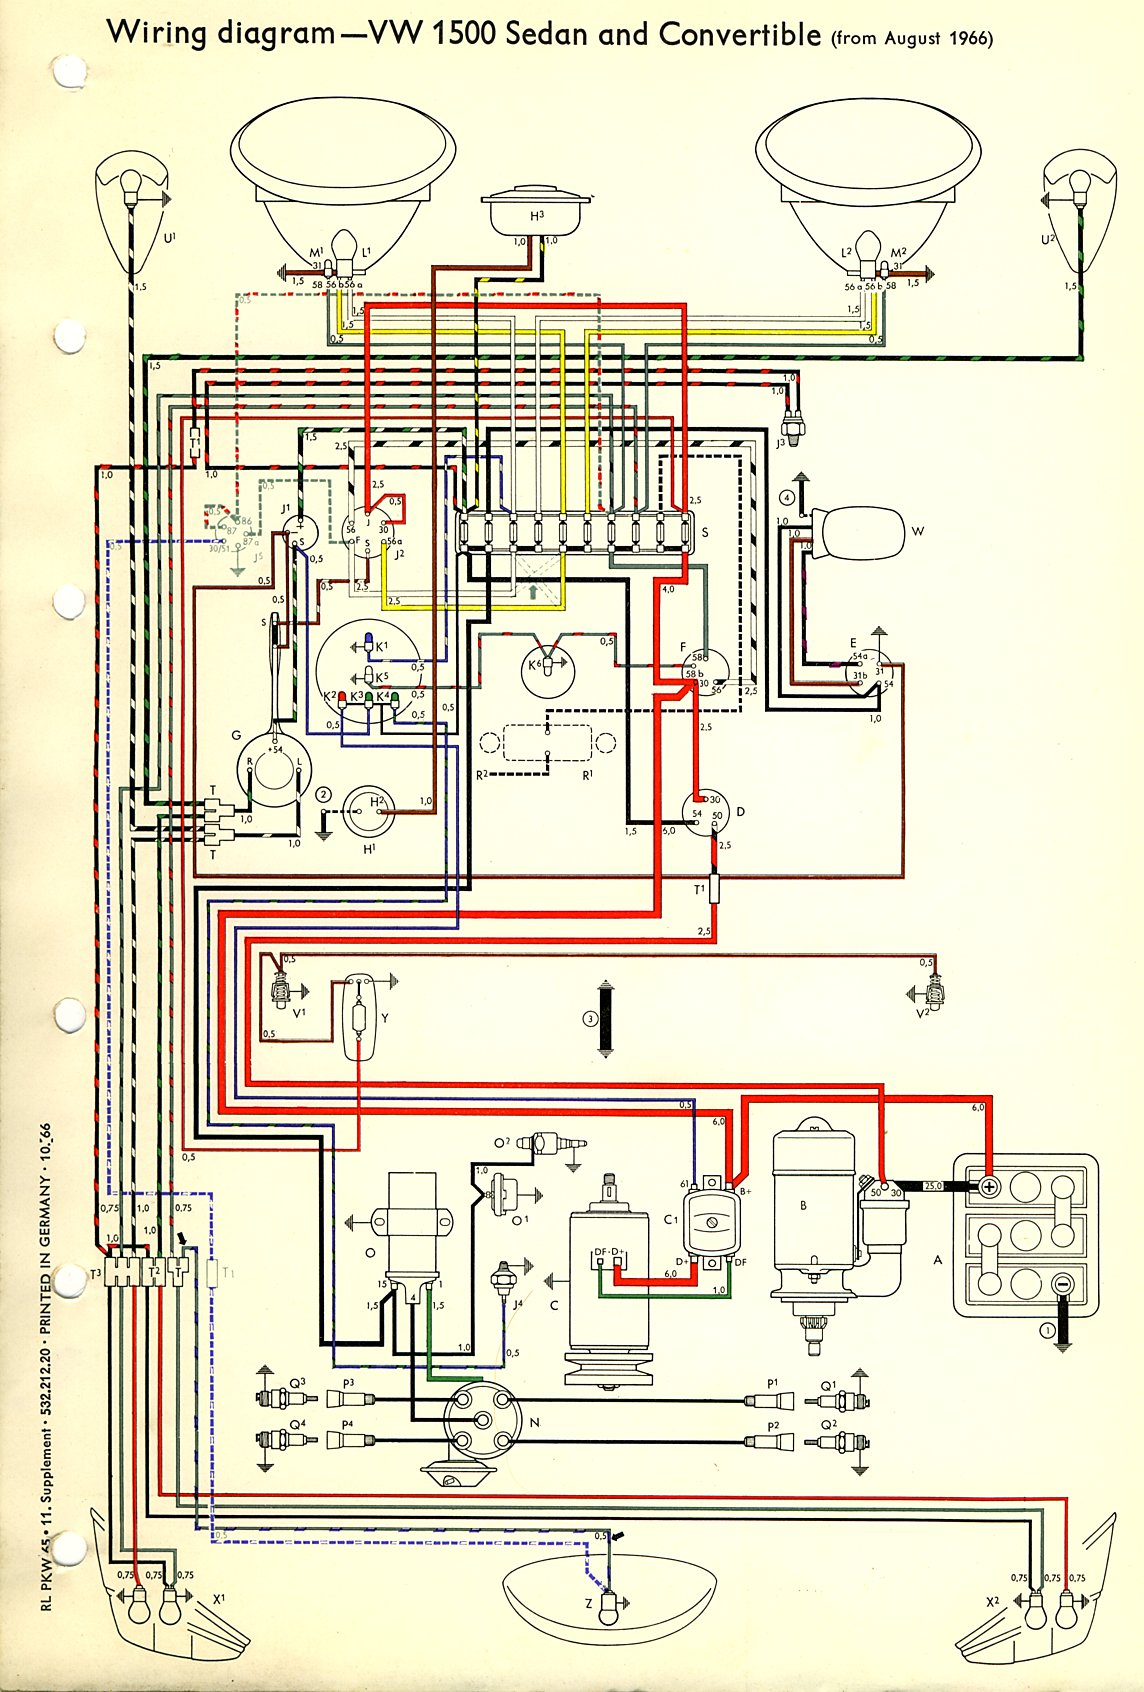 bug_67 67 vw bus wiring harness 71 vw wiring harness \u2022 wiring diagrams Wiring Harness Diagram at gsmx.co